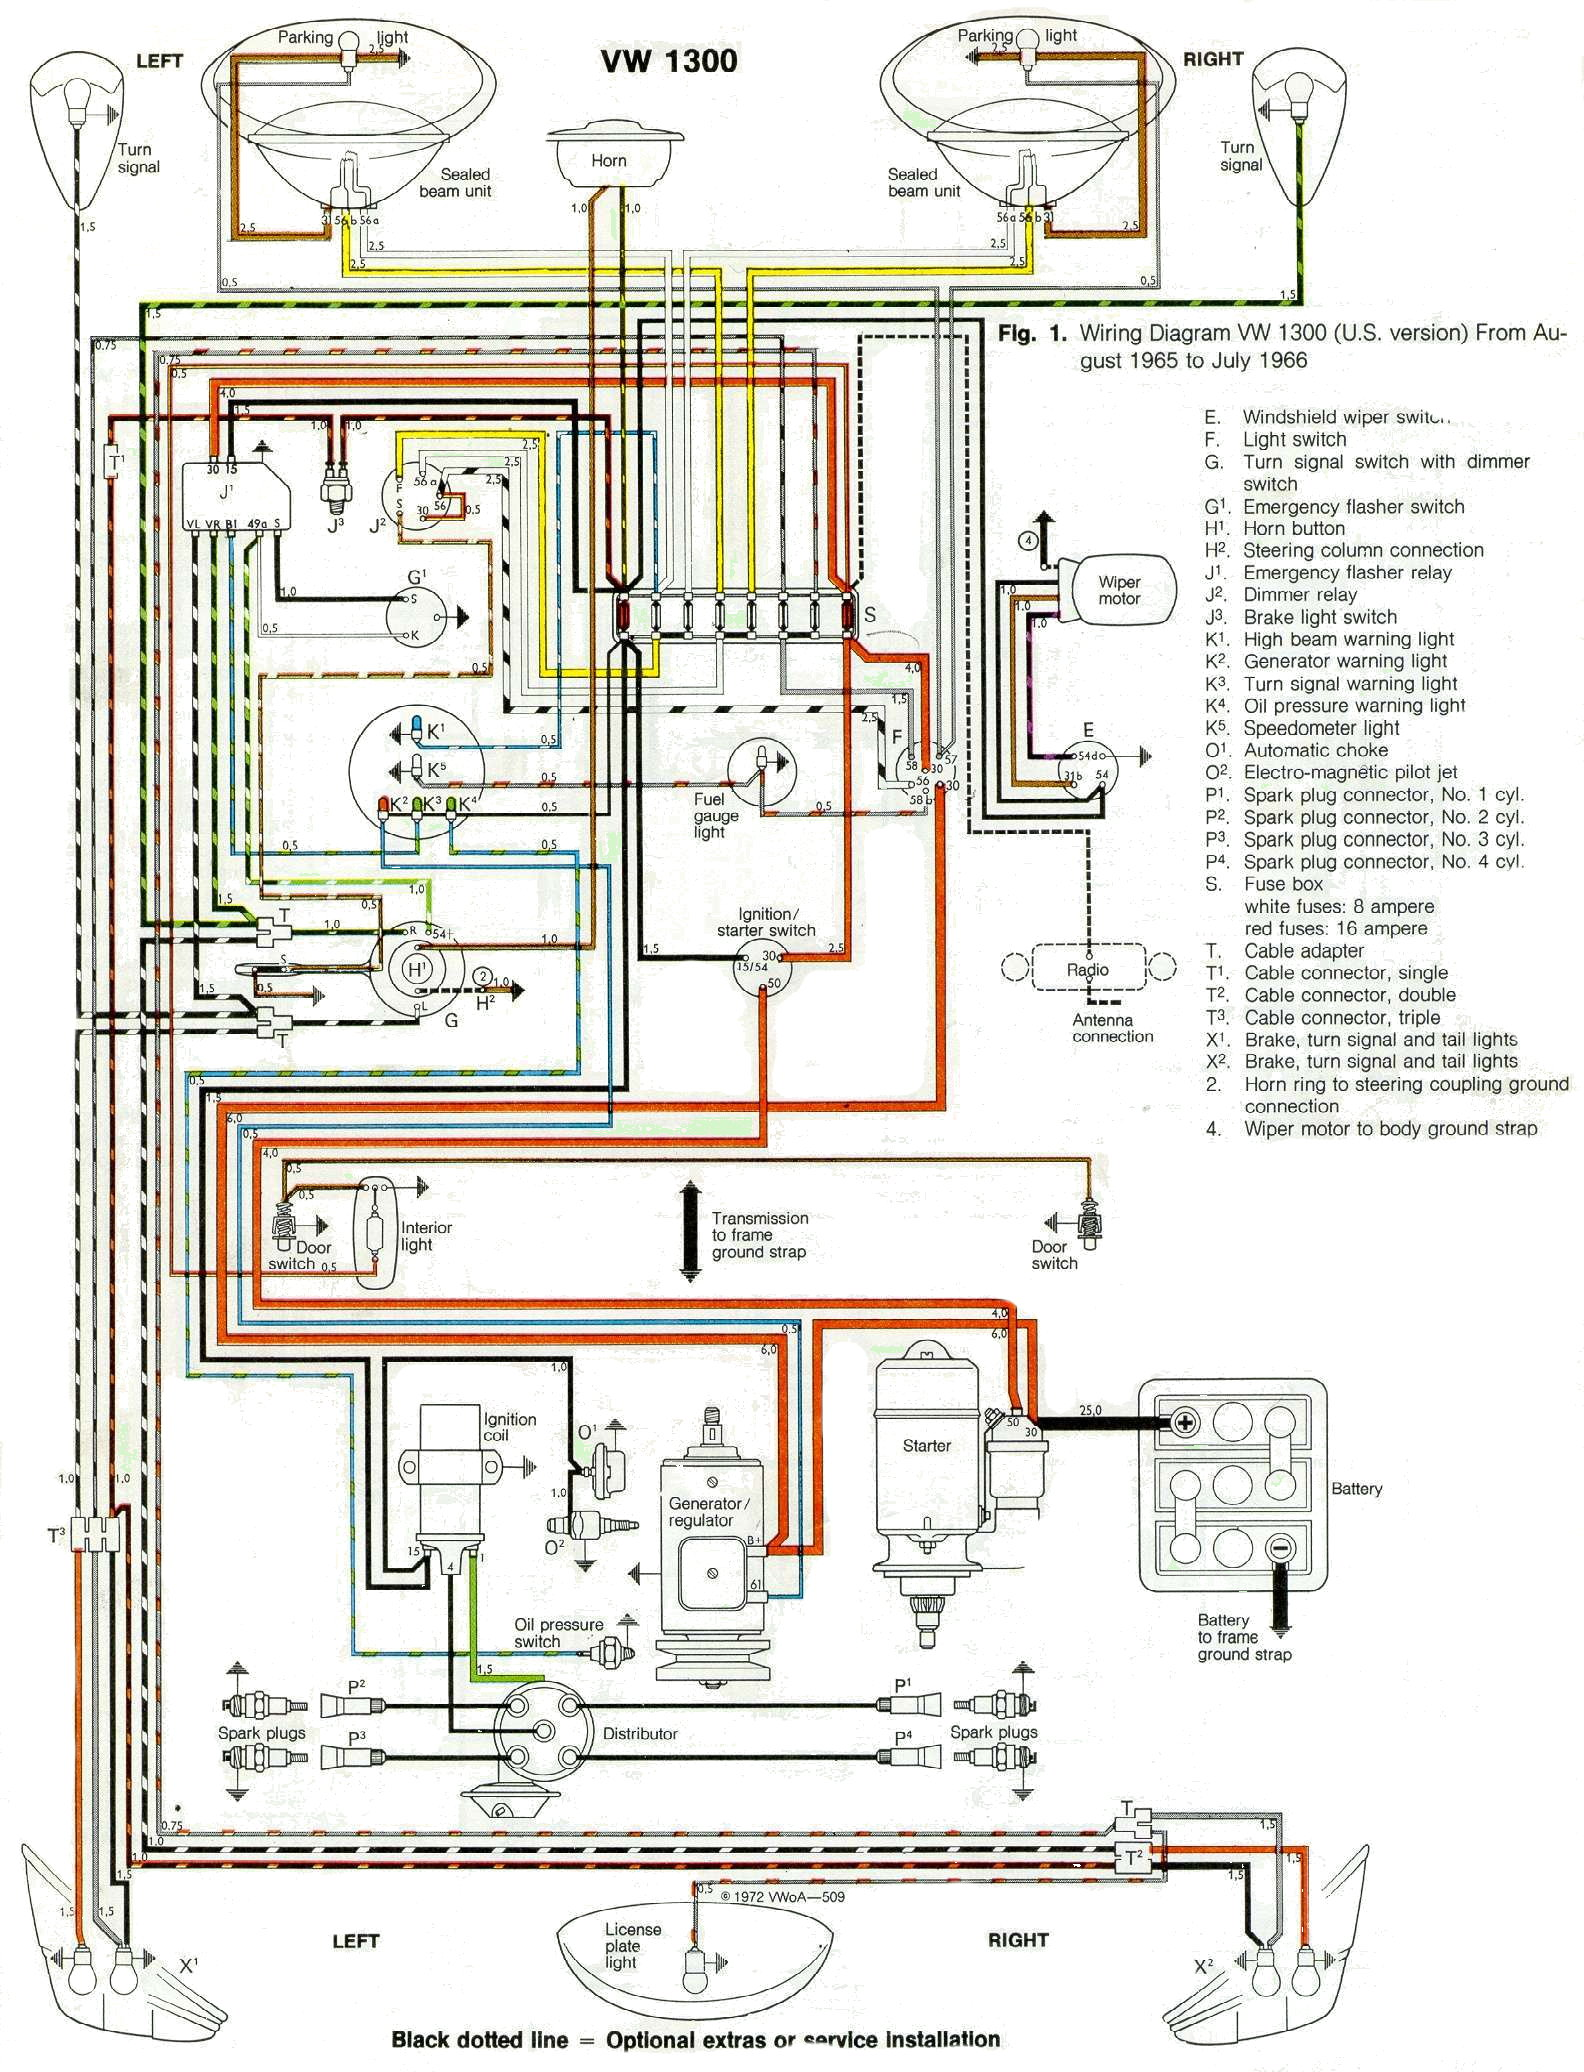 1966 Wiring volkswagen wiring diagram volkswagen golf wiring diagram \u2022 free new beetle wiring diagram at bayanpartner.co